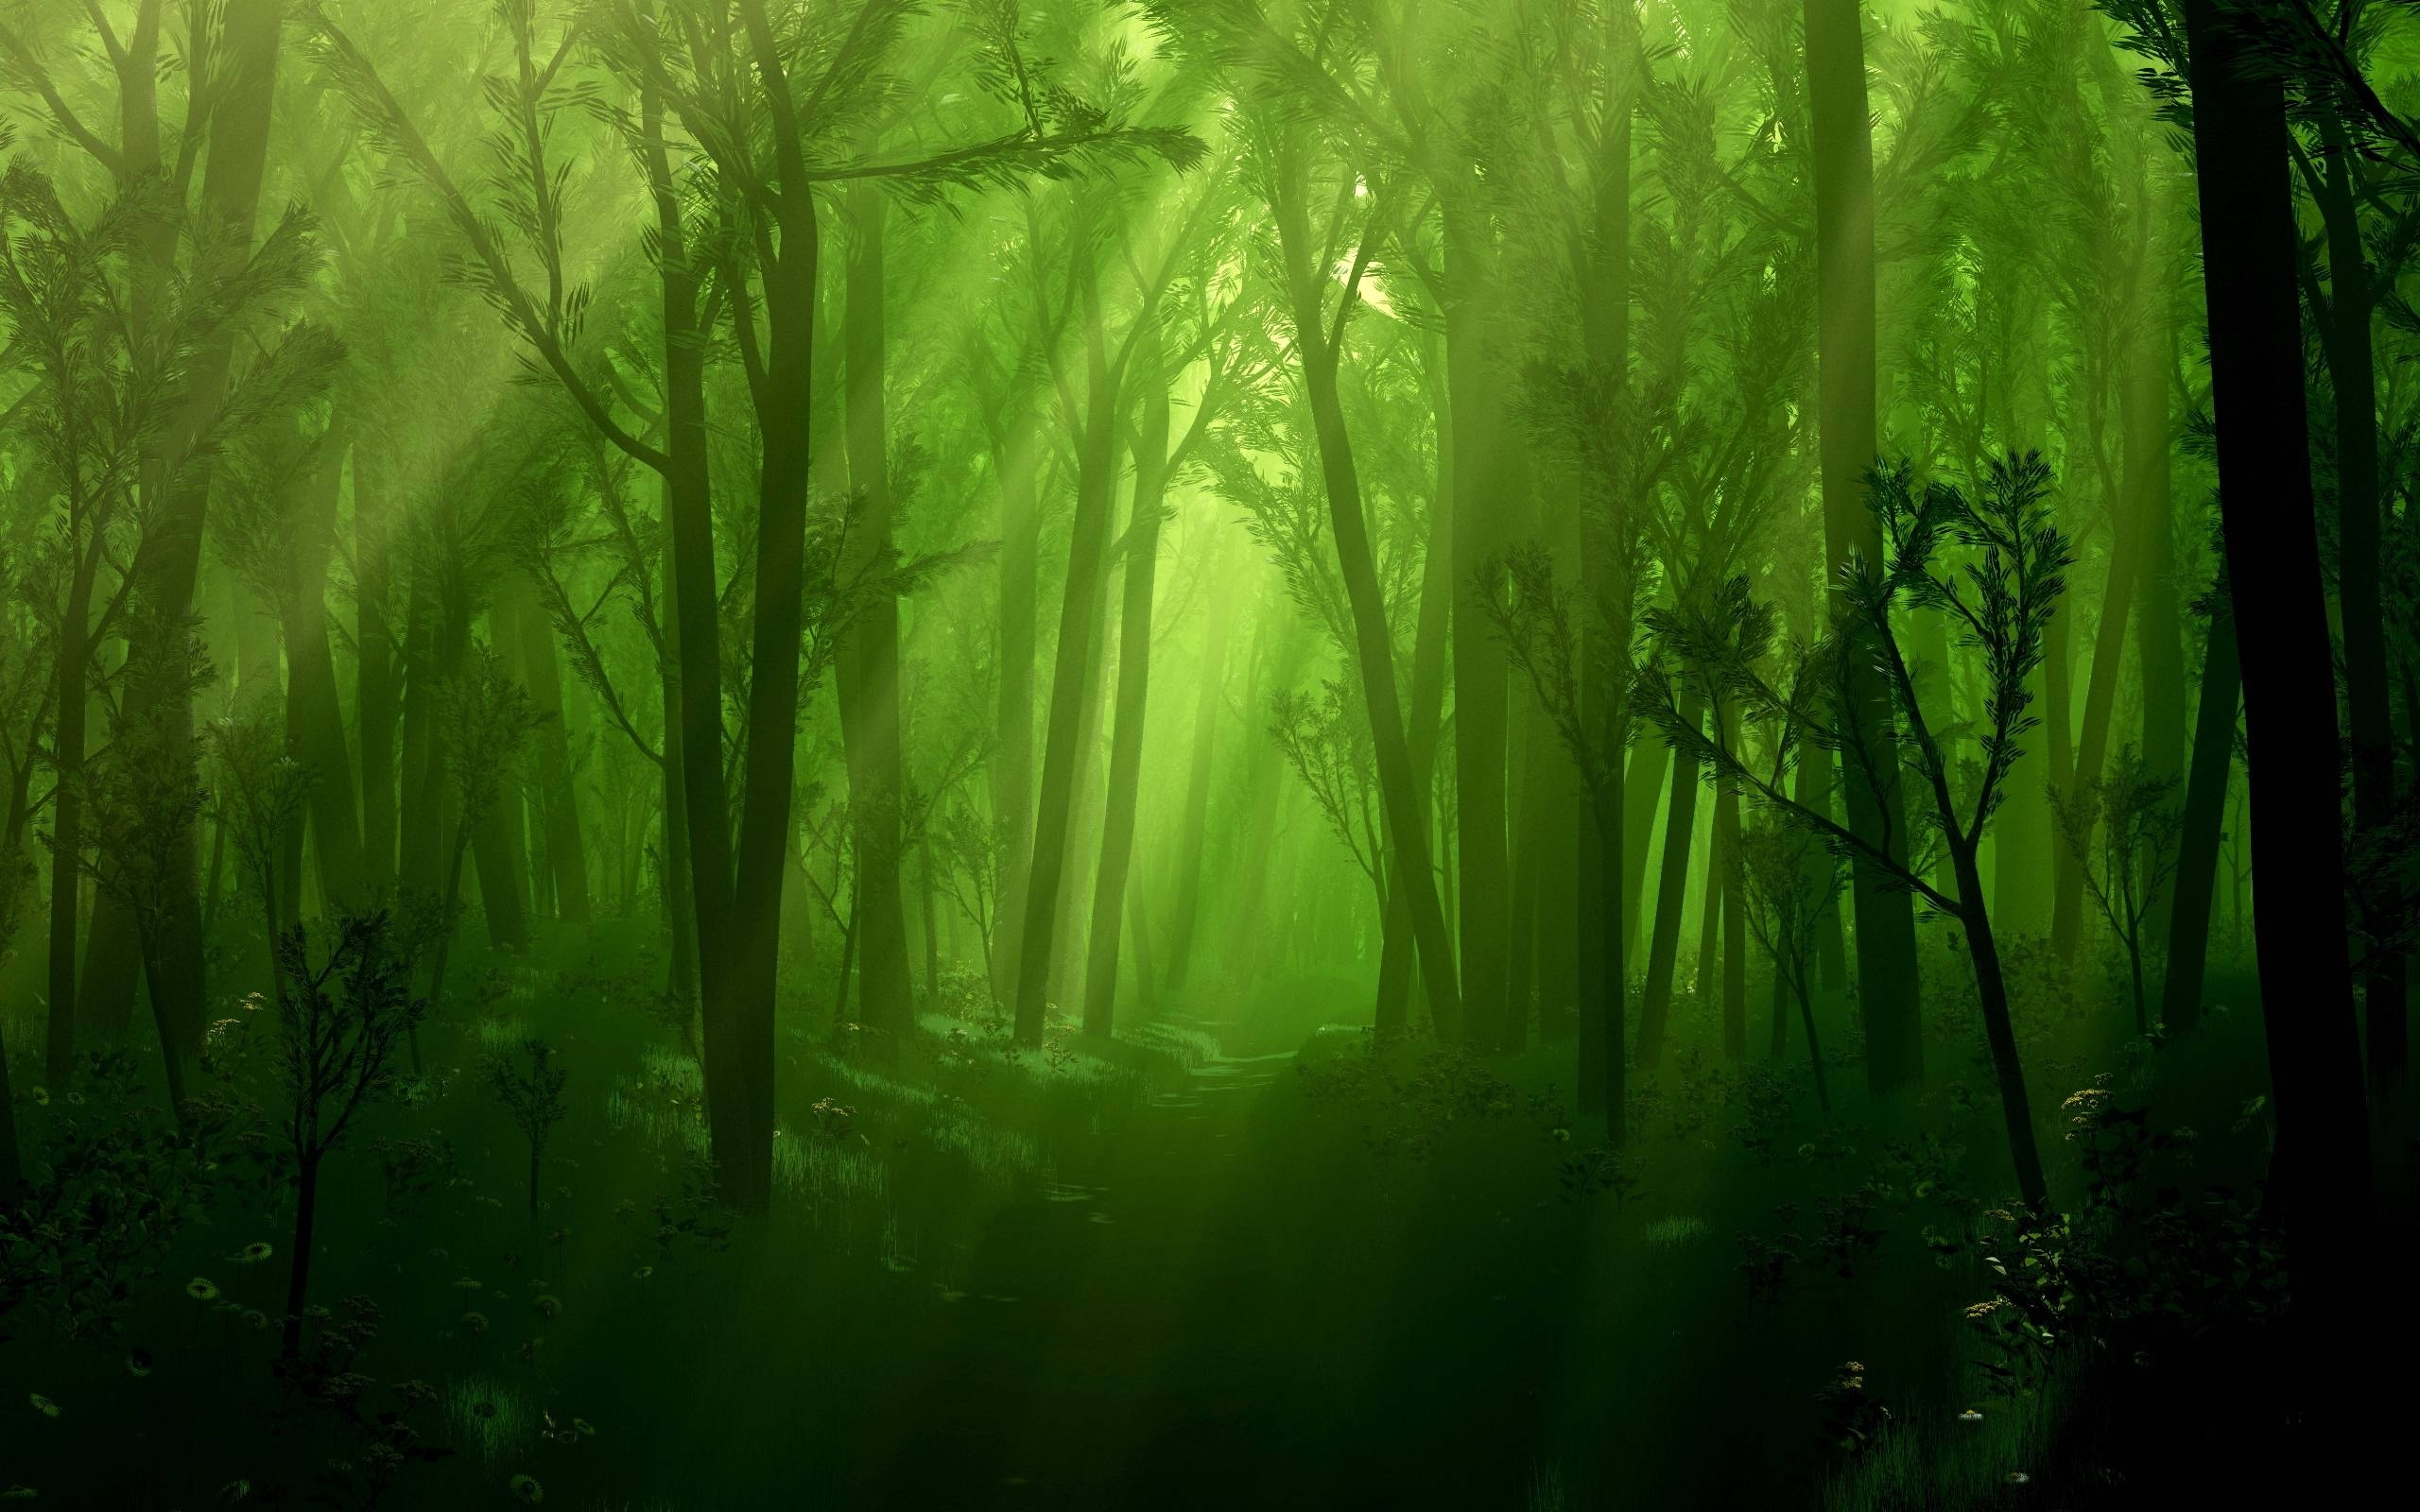 enchanted forest backgrounds - wallpaper cave